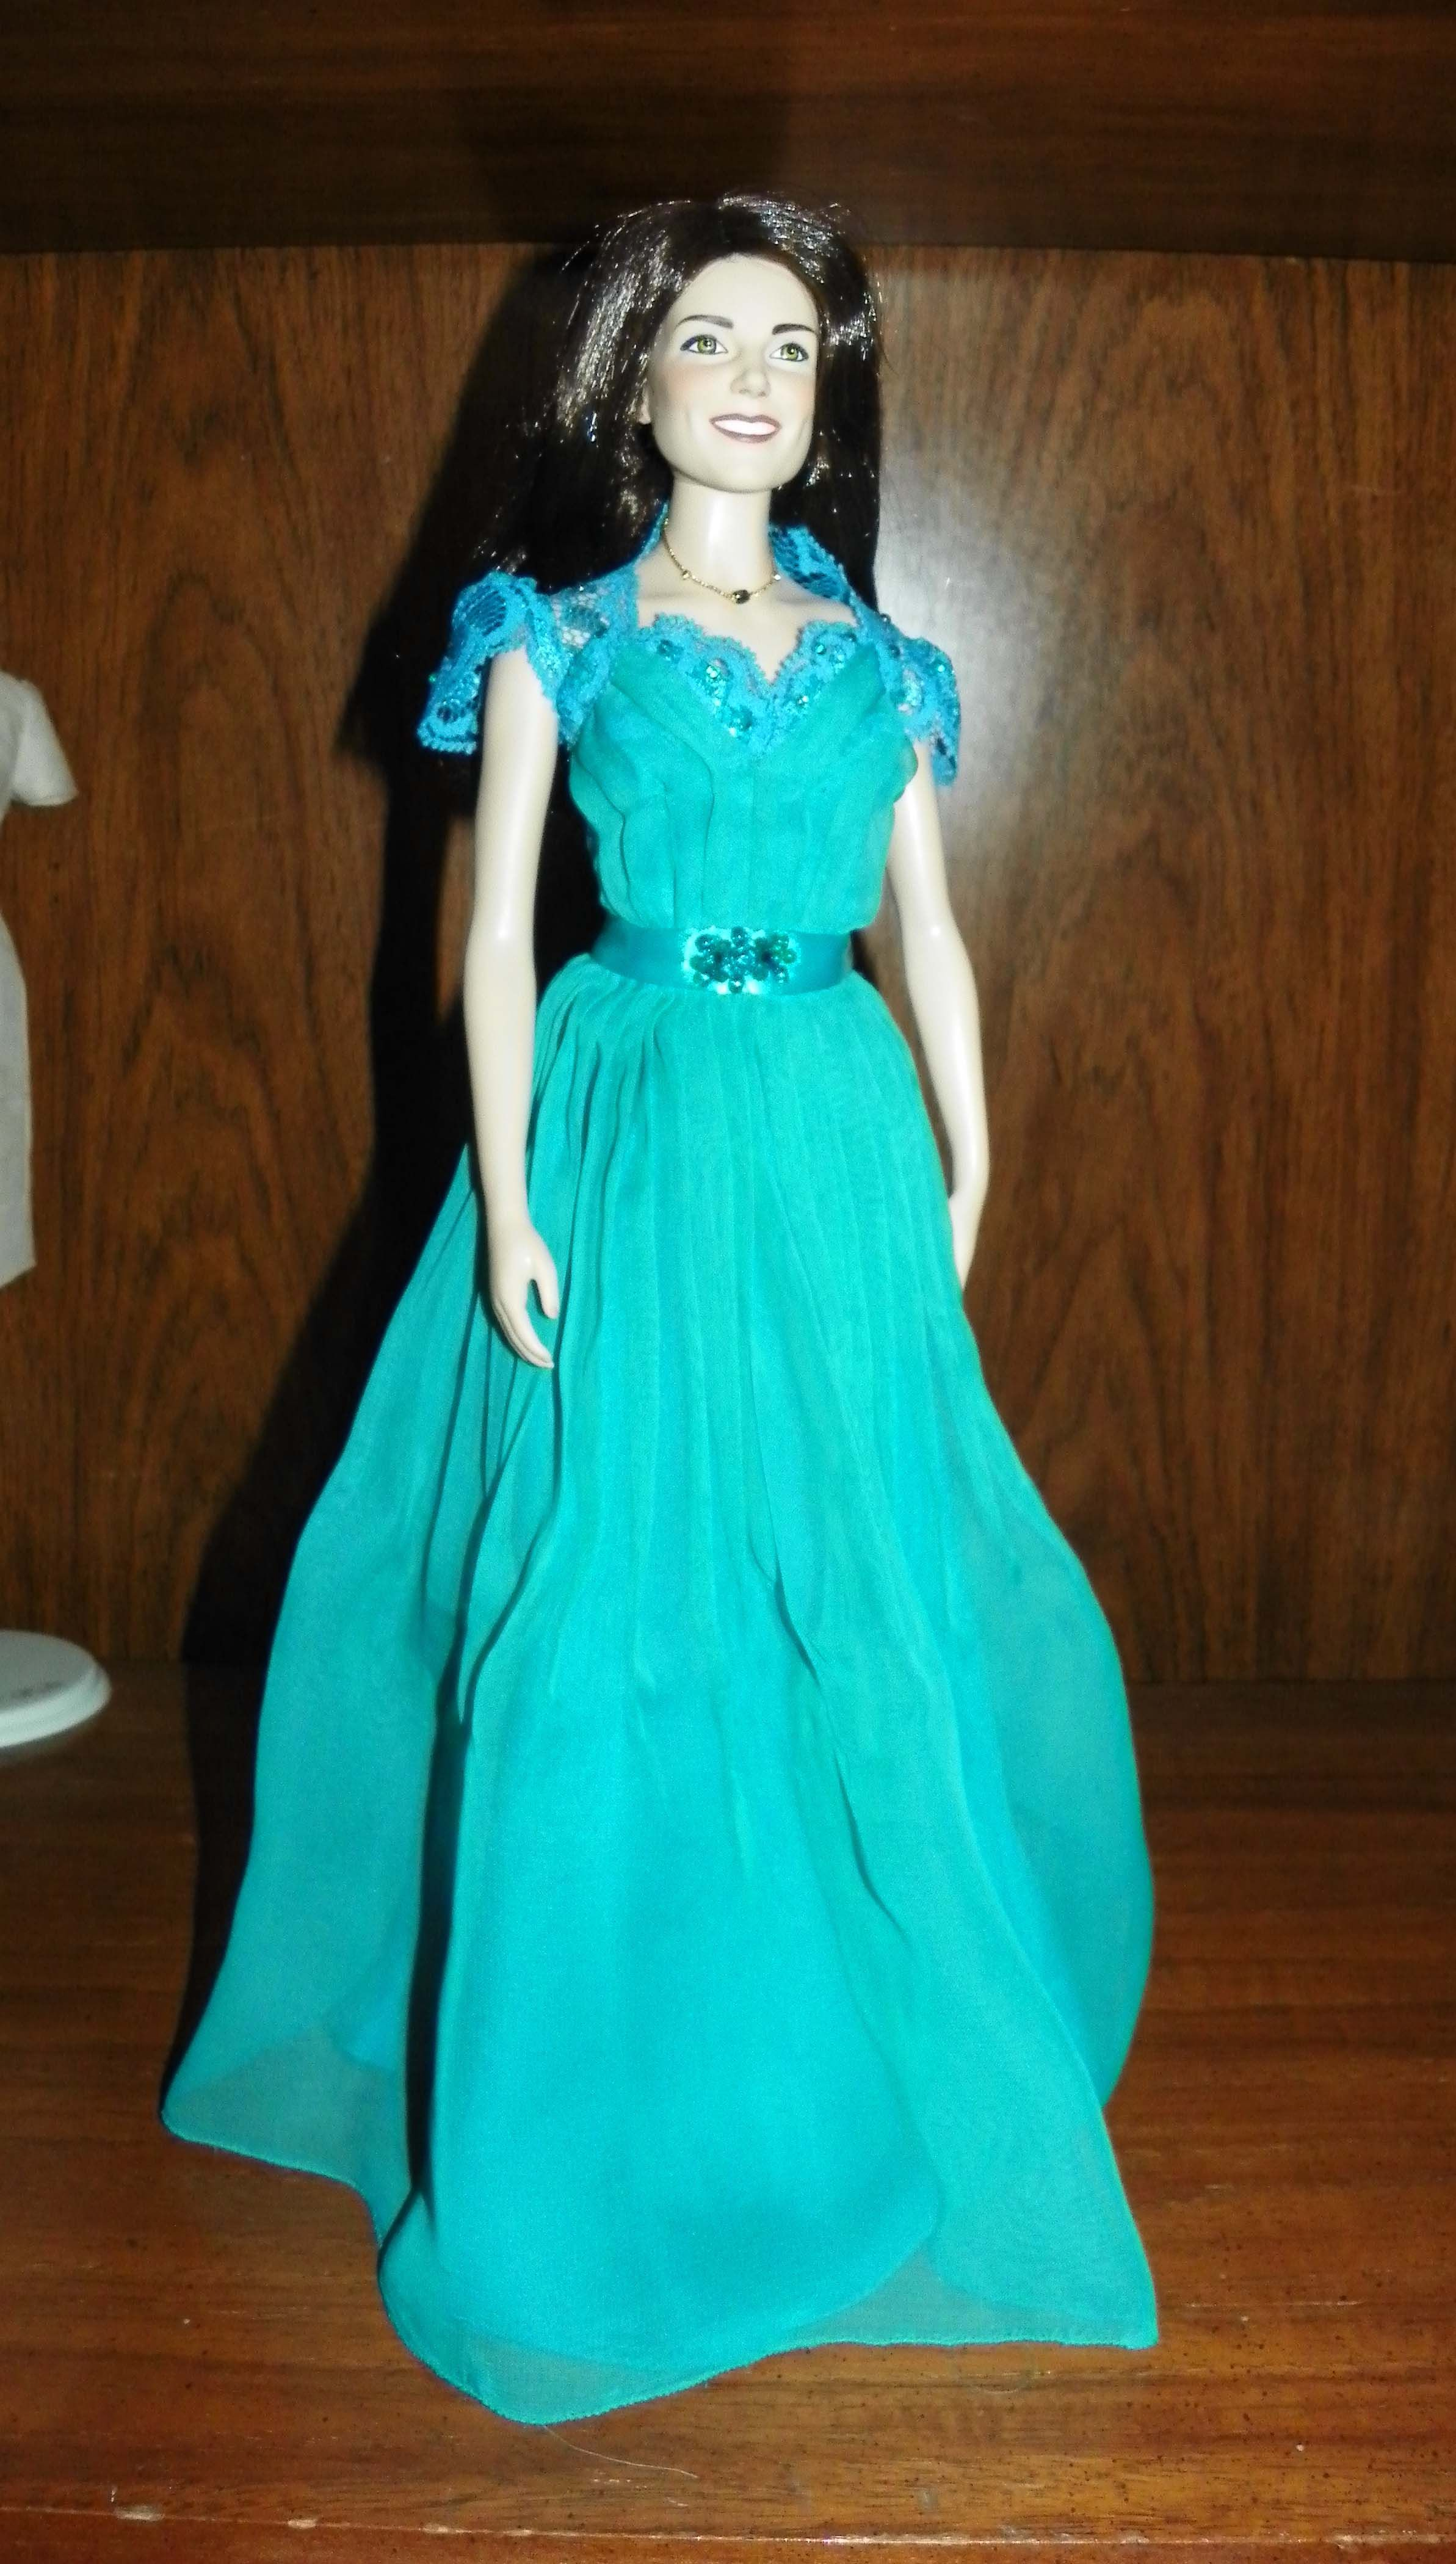 Jenny Packham teal chiffon gown worn 2012? Replica by Bea